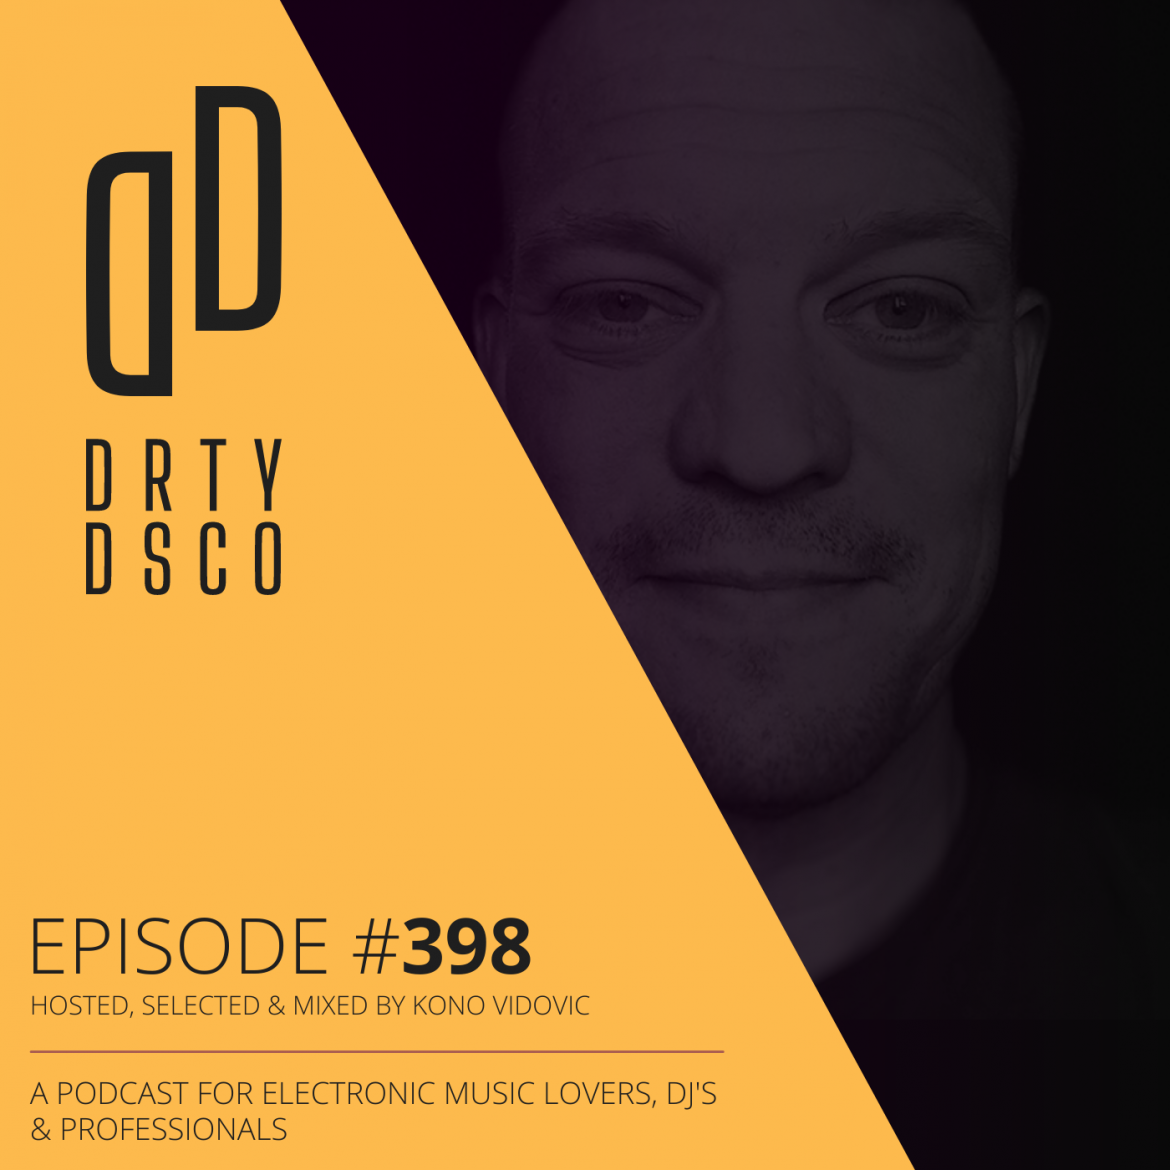 New branding & logo in Dirty Disco 398